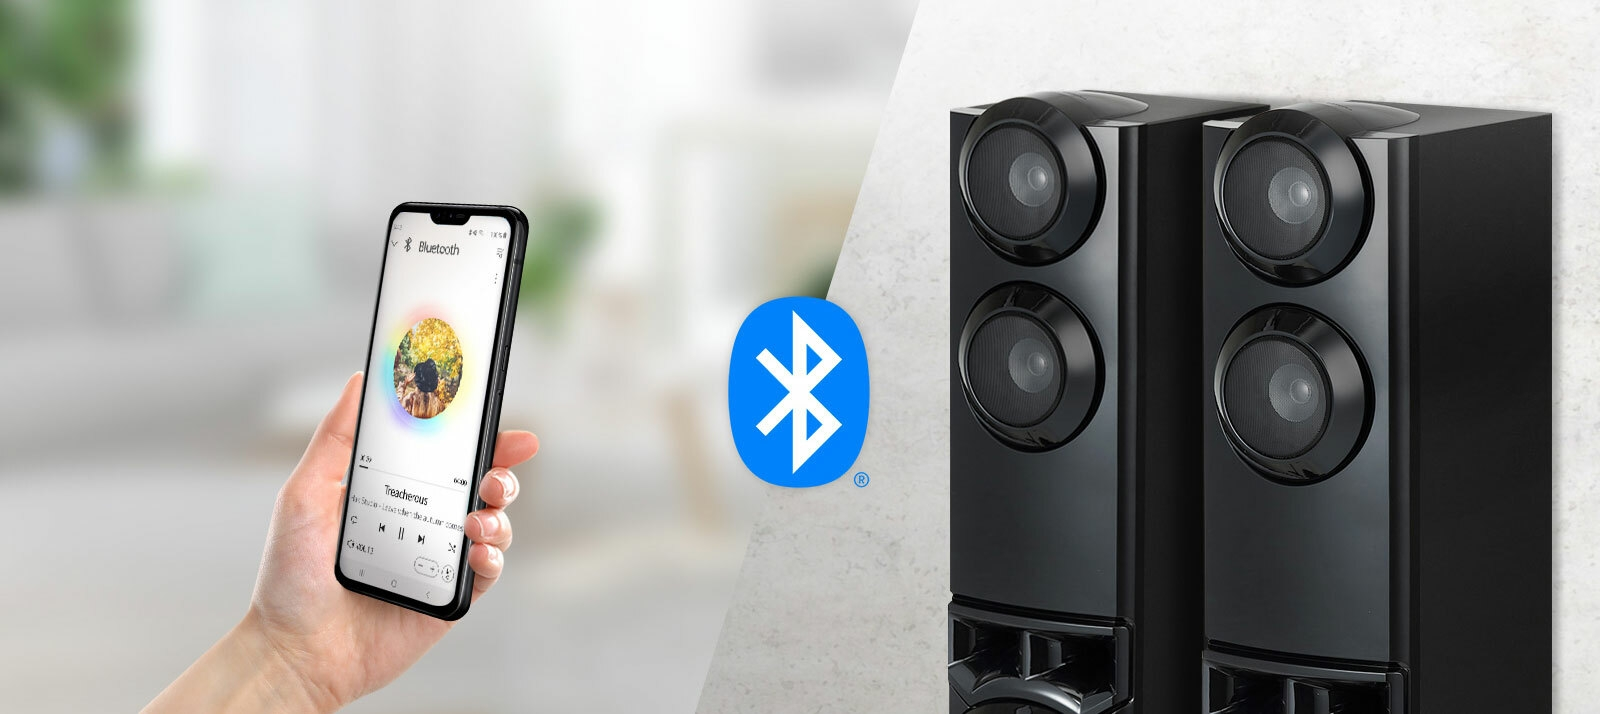 A smartphone and speakers are connected, and there is a Bluetooth logo between speakers and a smartphone.